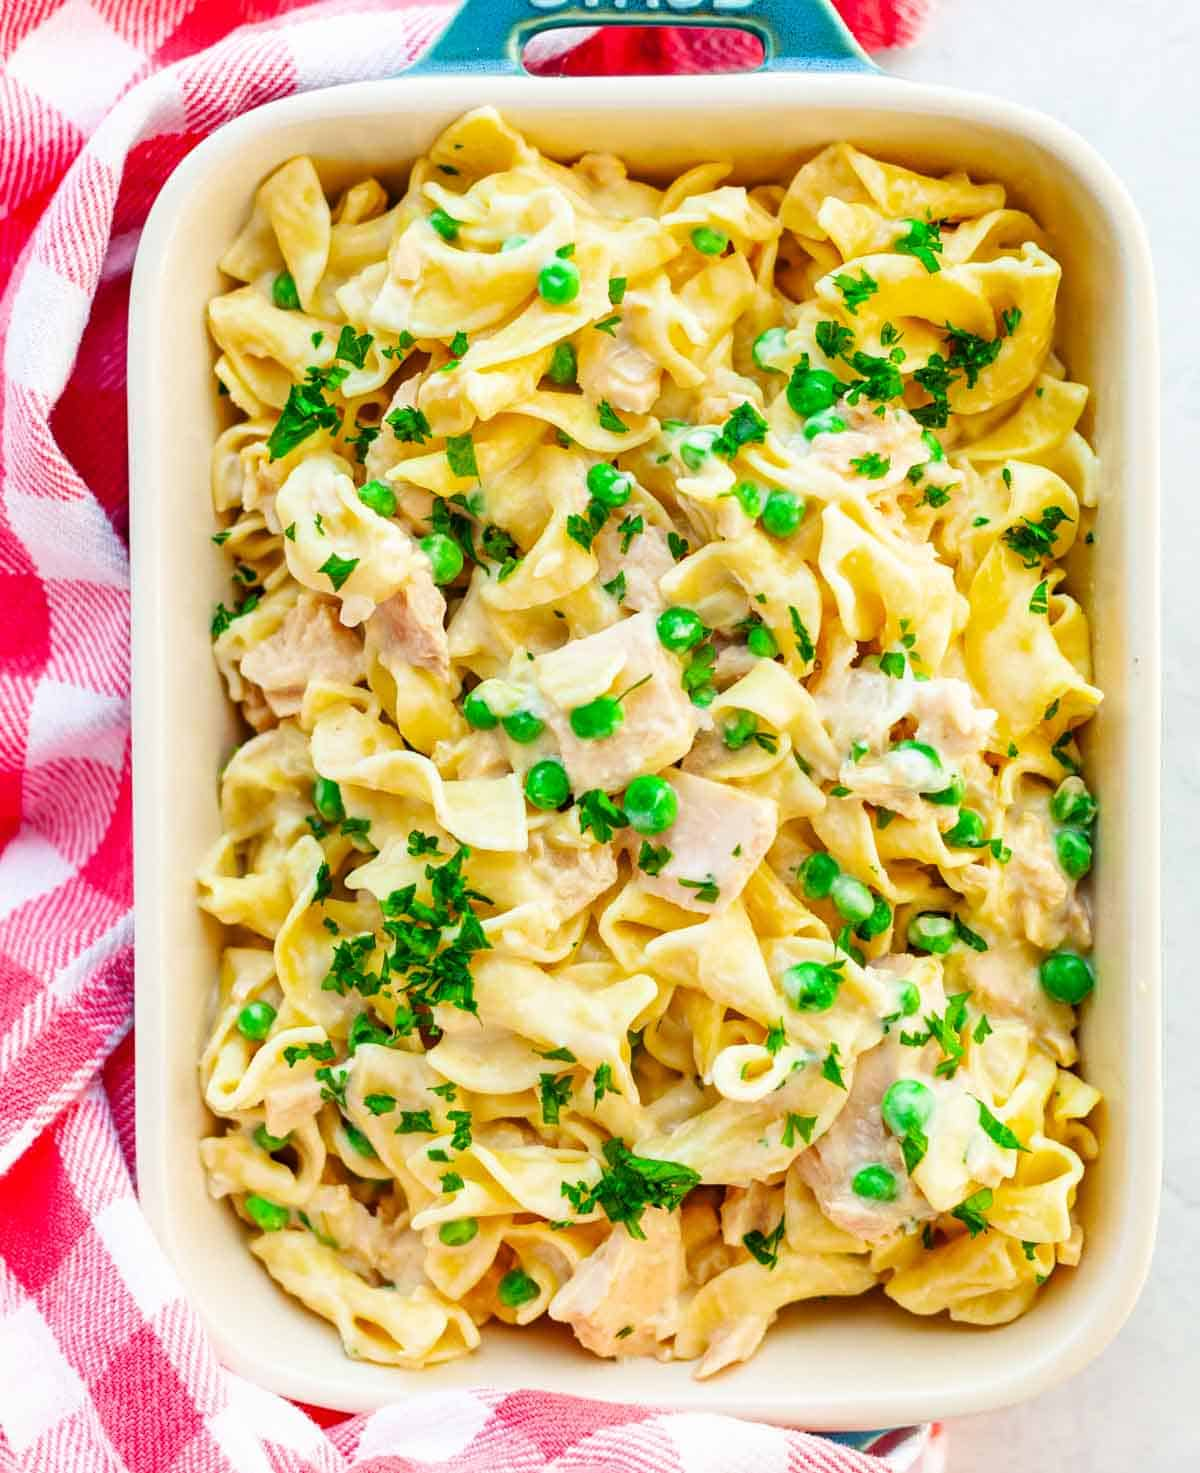 baking dish filled with tuna casserole with egg noodles and peas